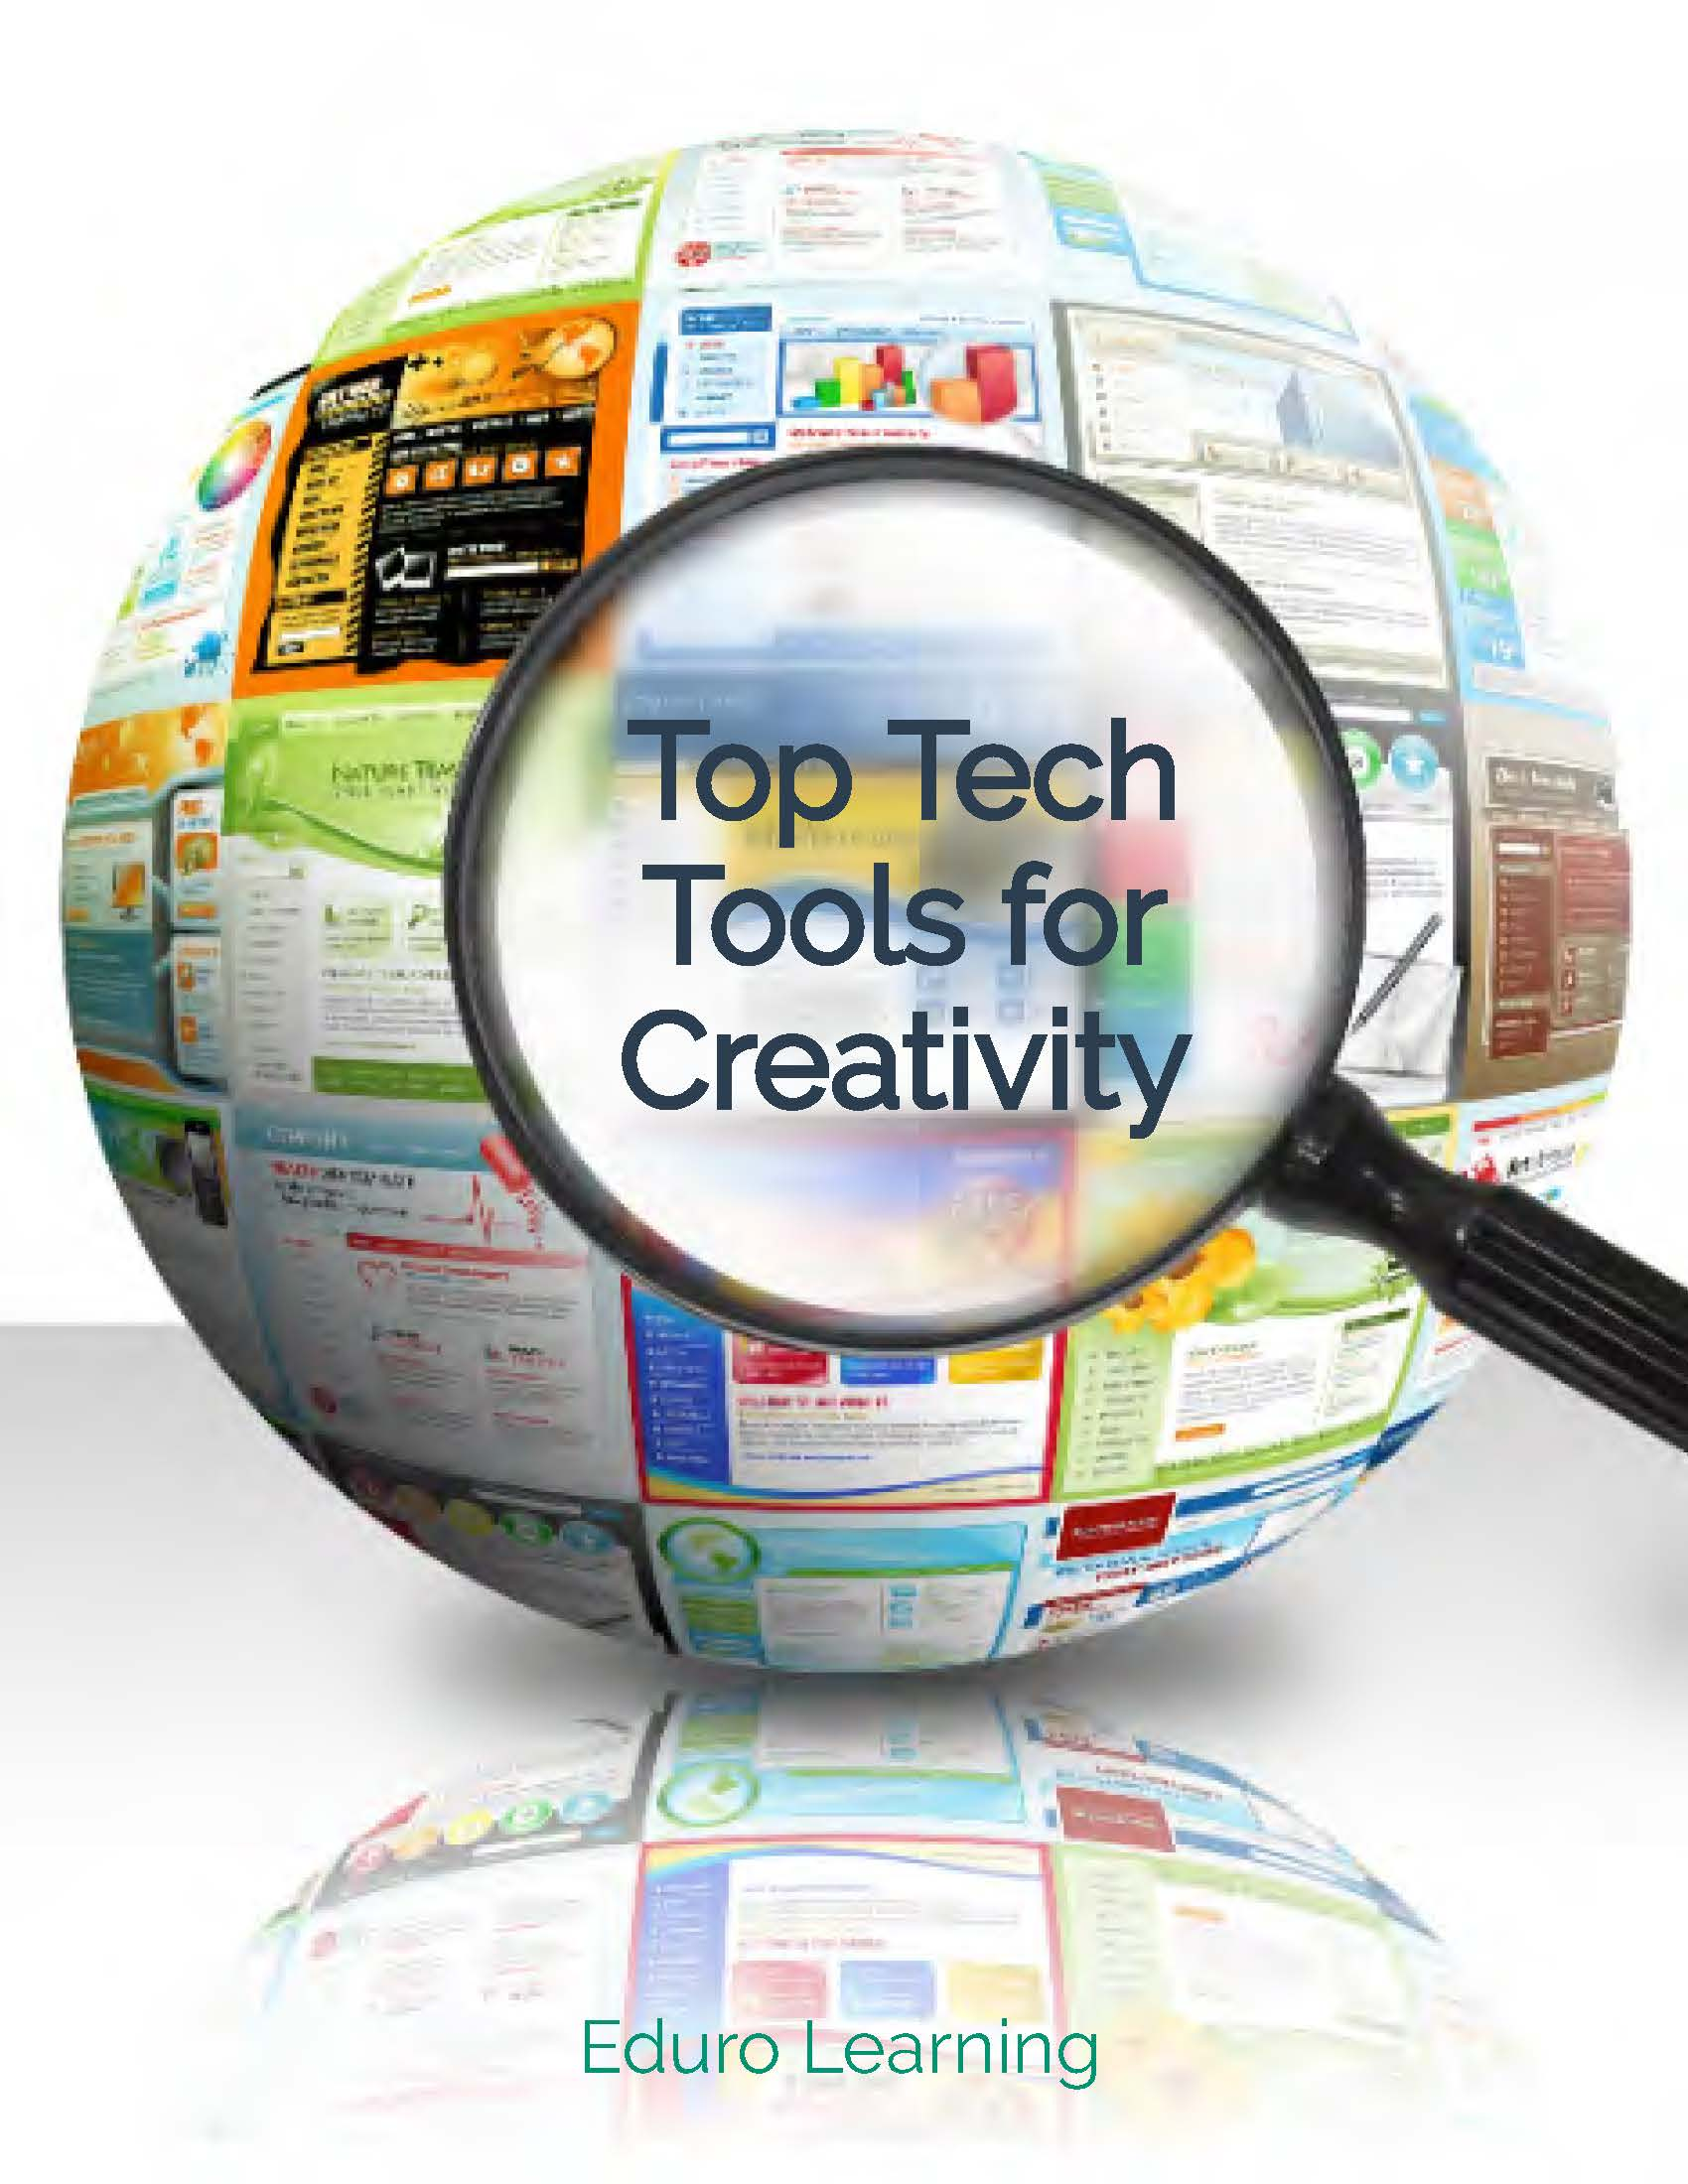 Top_Tech_Tools_for_Creativity_cover_wn2hch